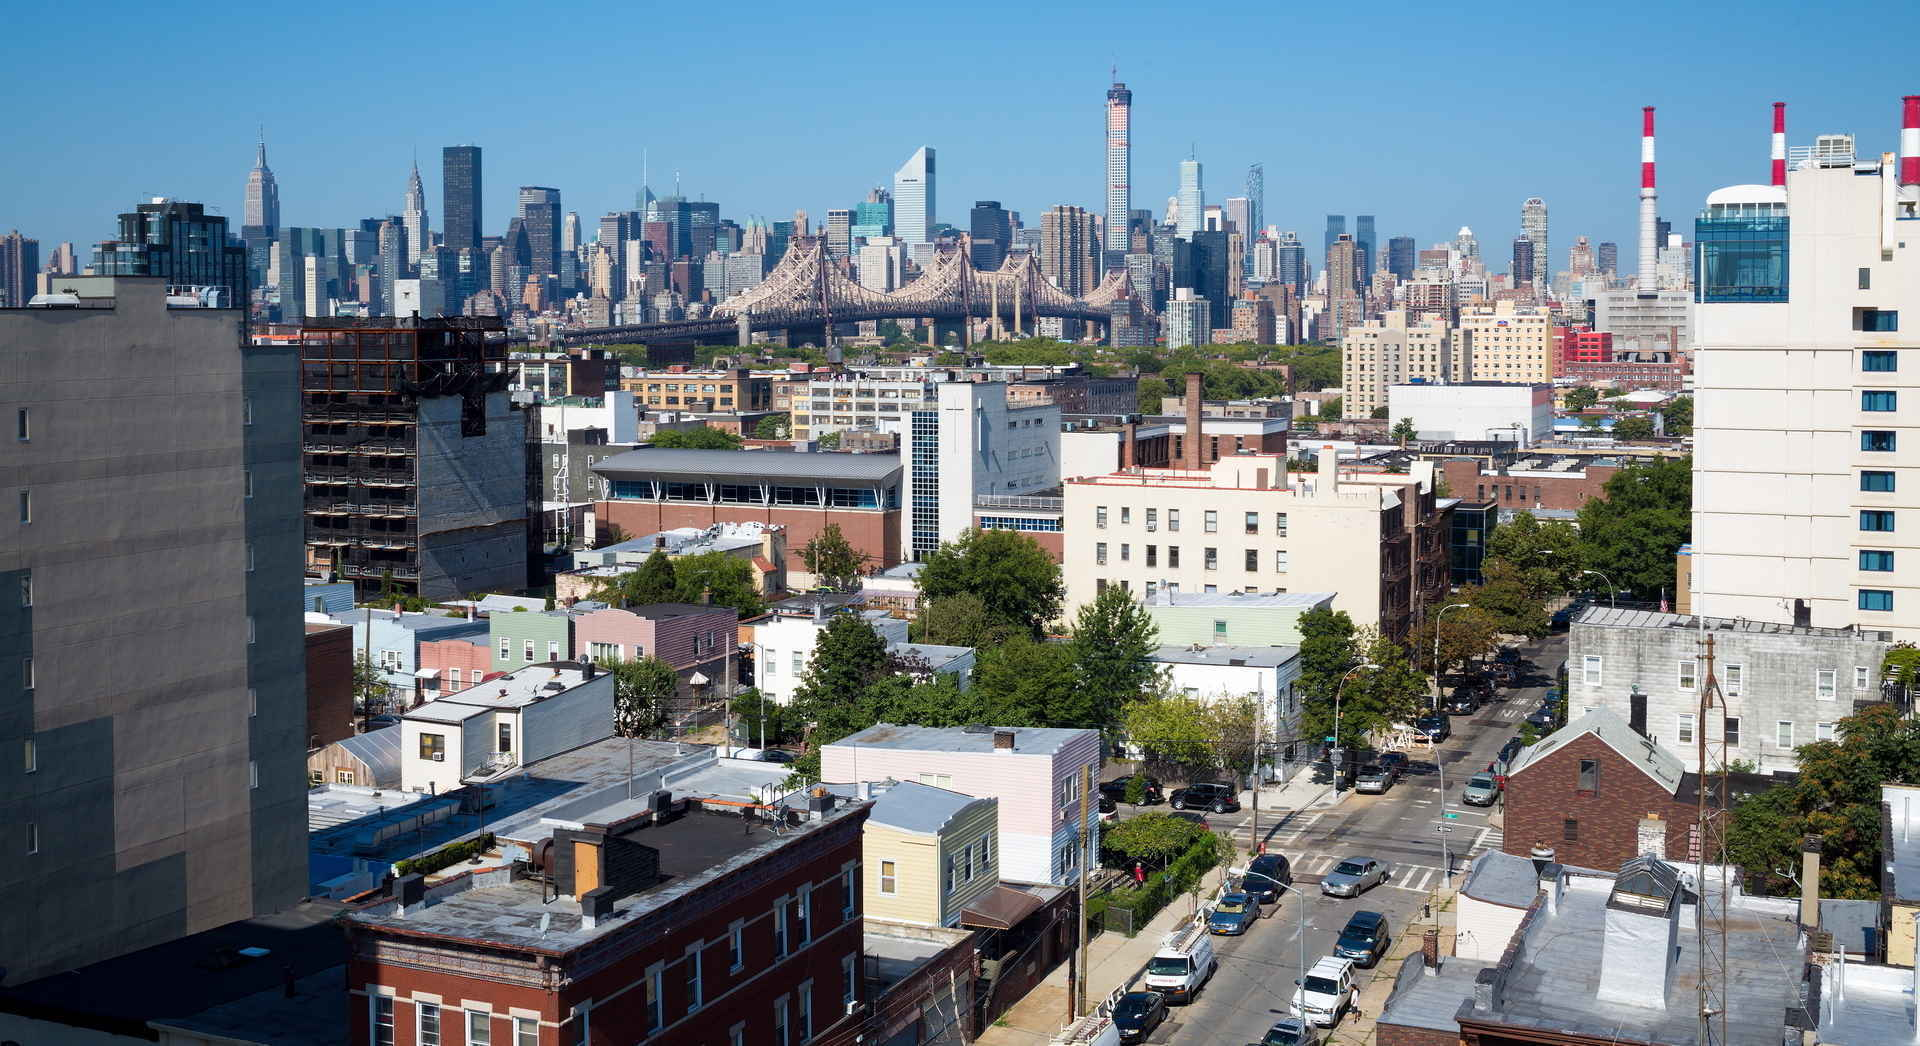 Panoramic view of Astoria neighborhood in Queens, New York